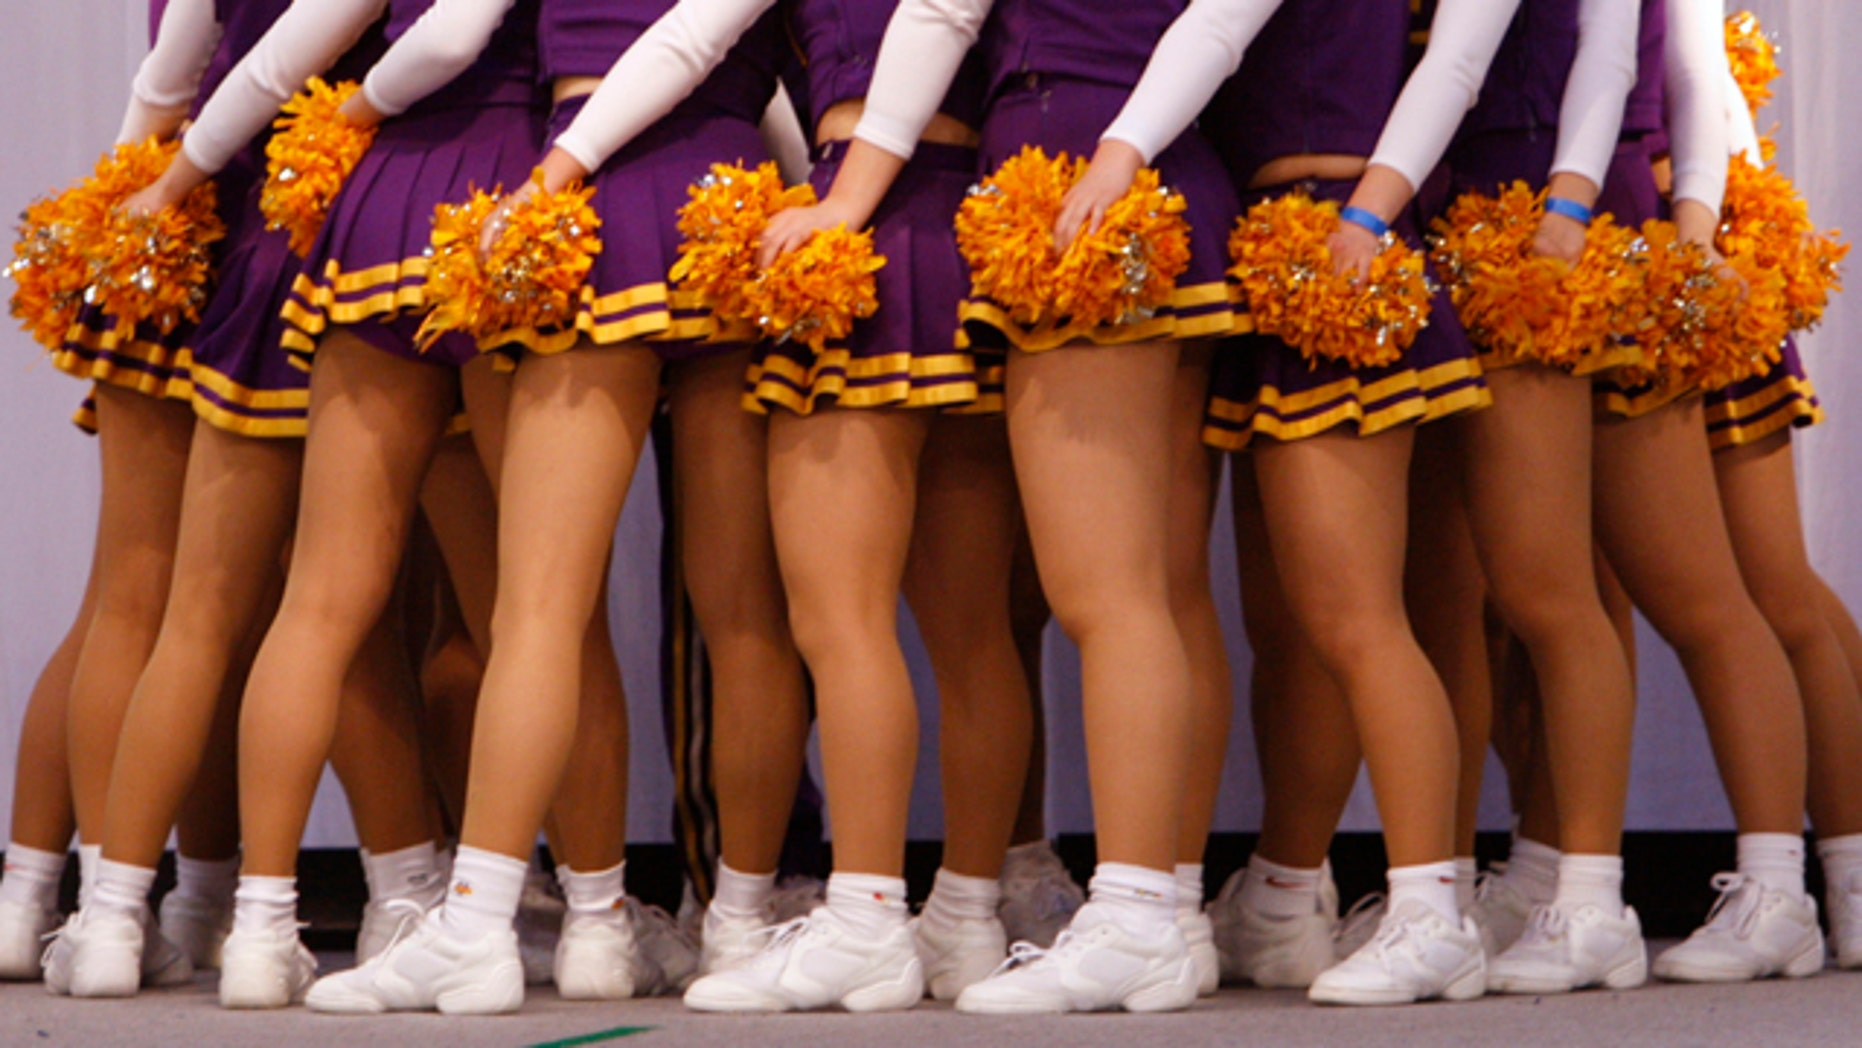 Cheerleader uniforms like the ones shown here are causing controversy at a California school.